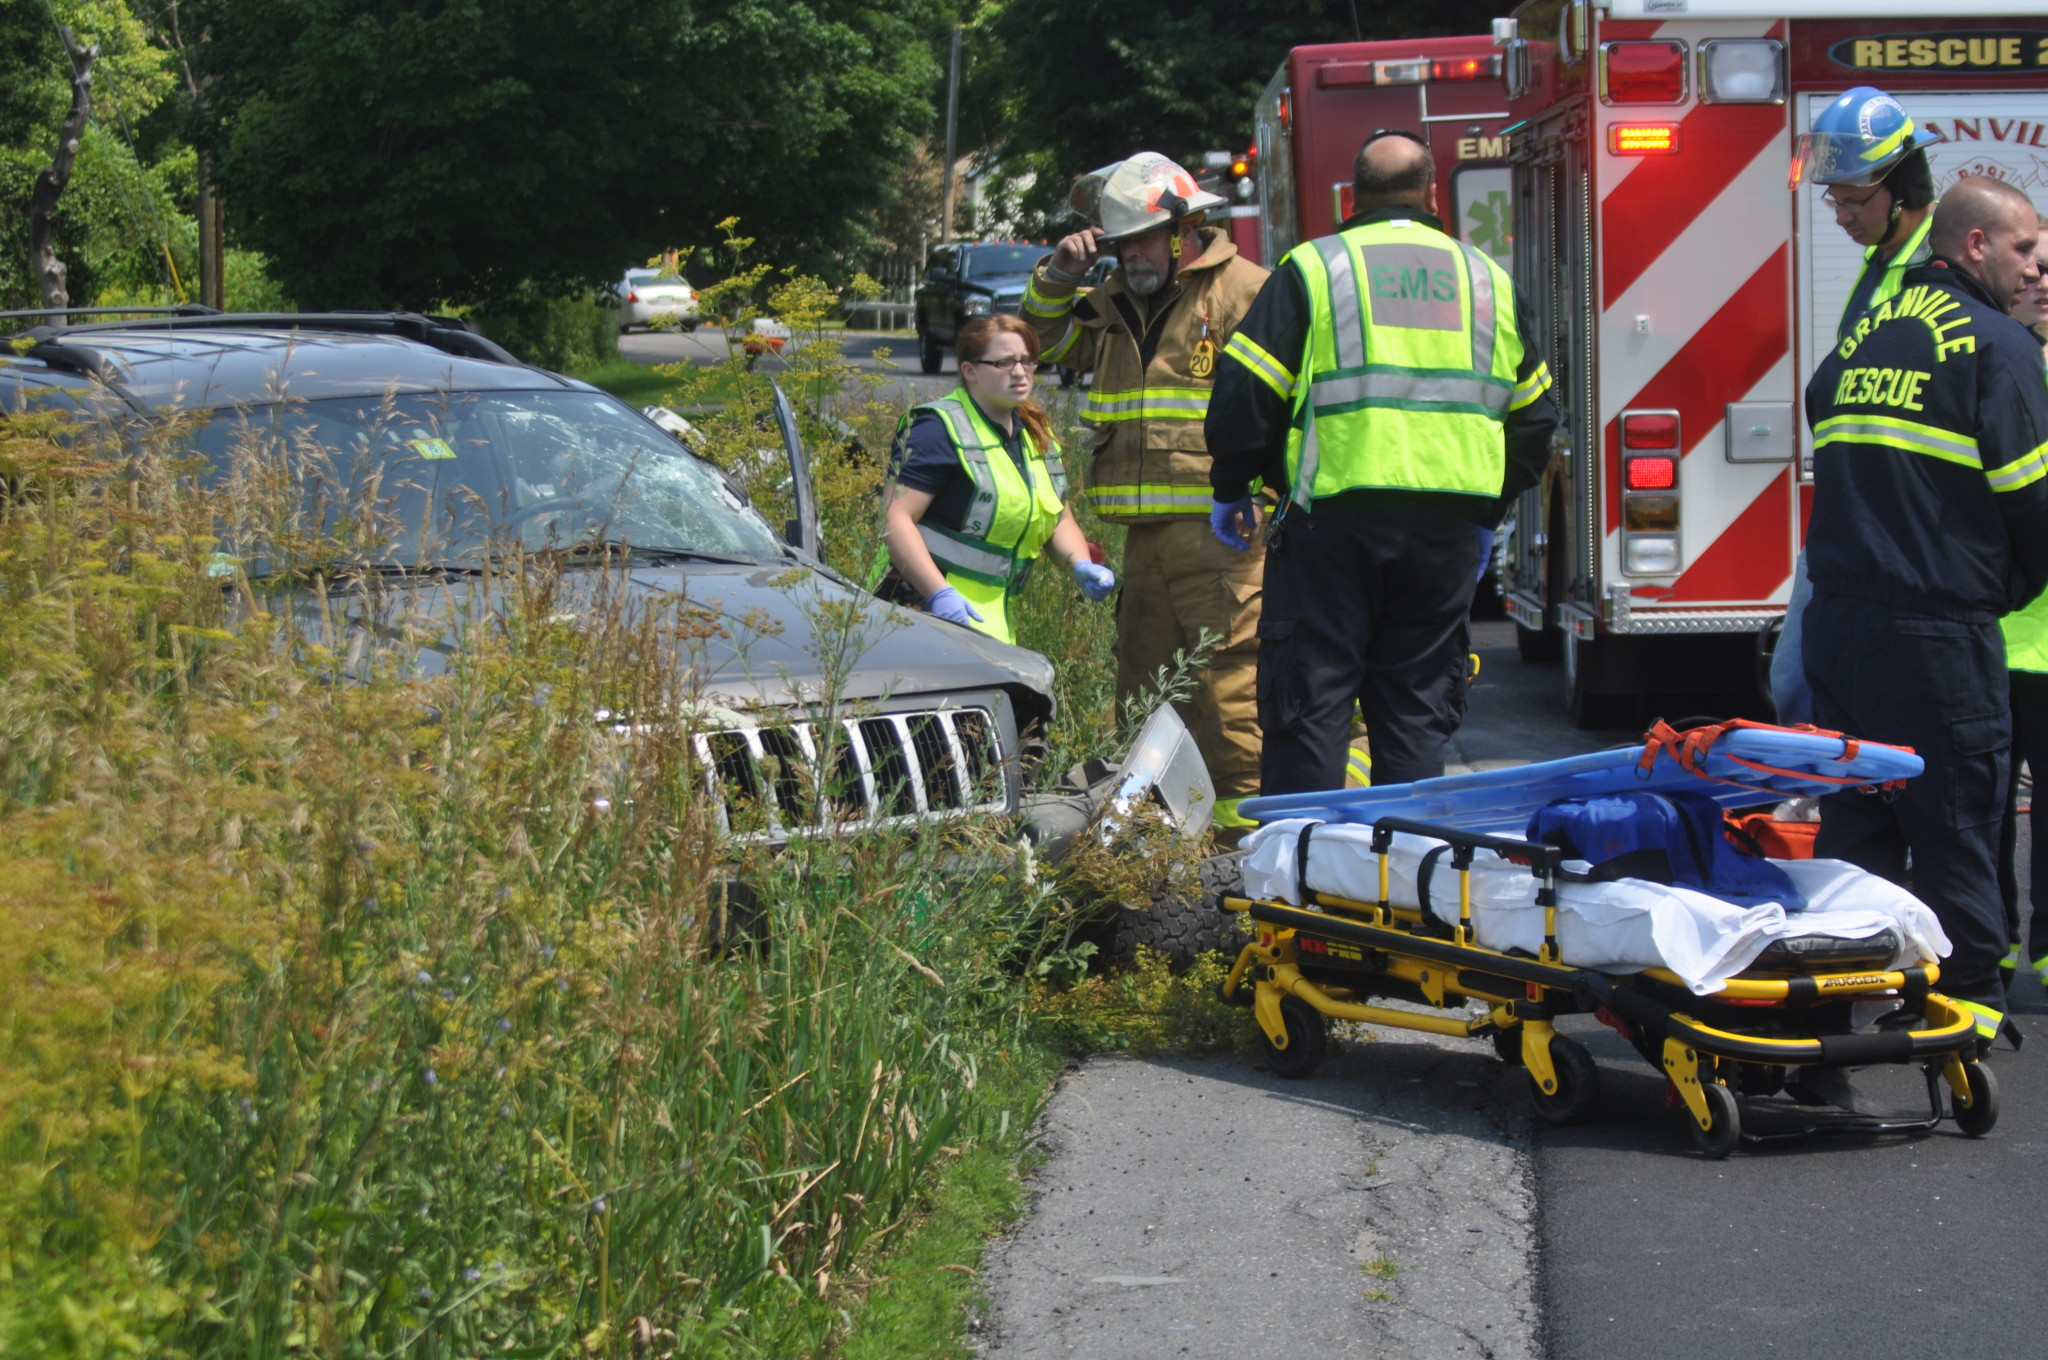 Breaking news: woman hurt in head-on crash